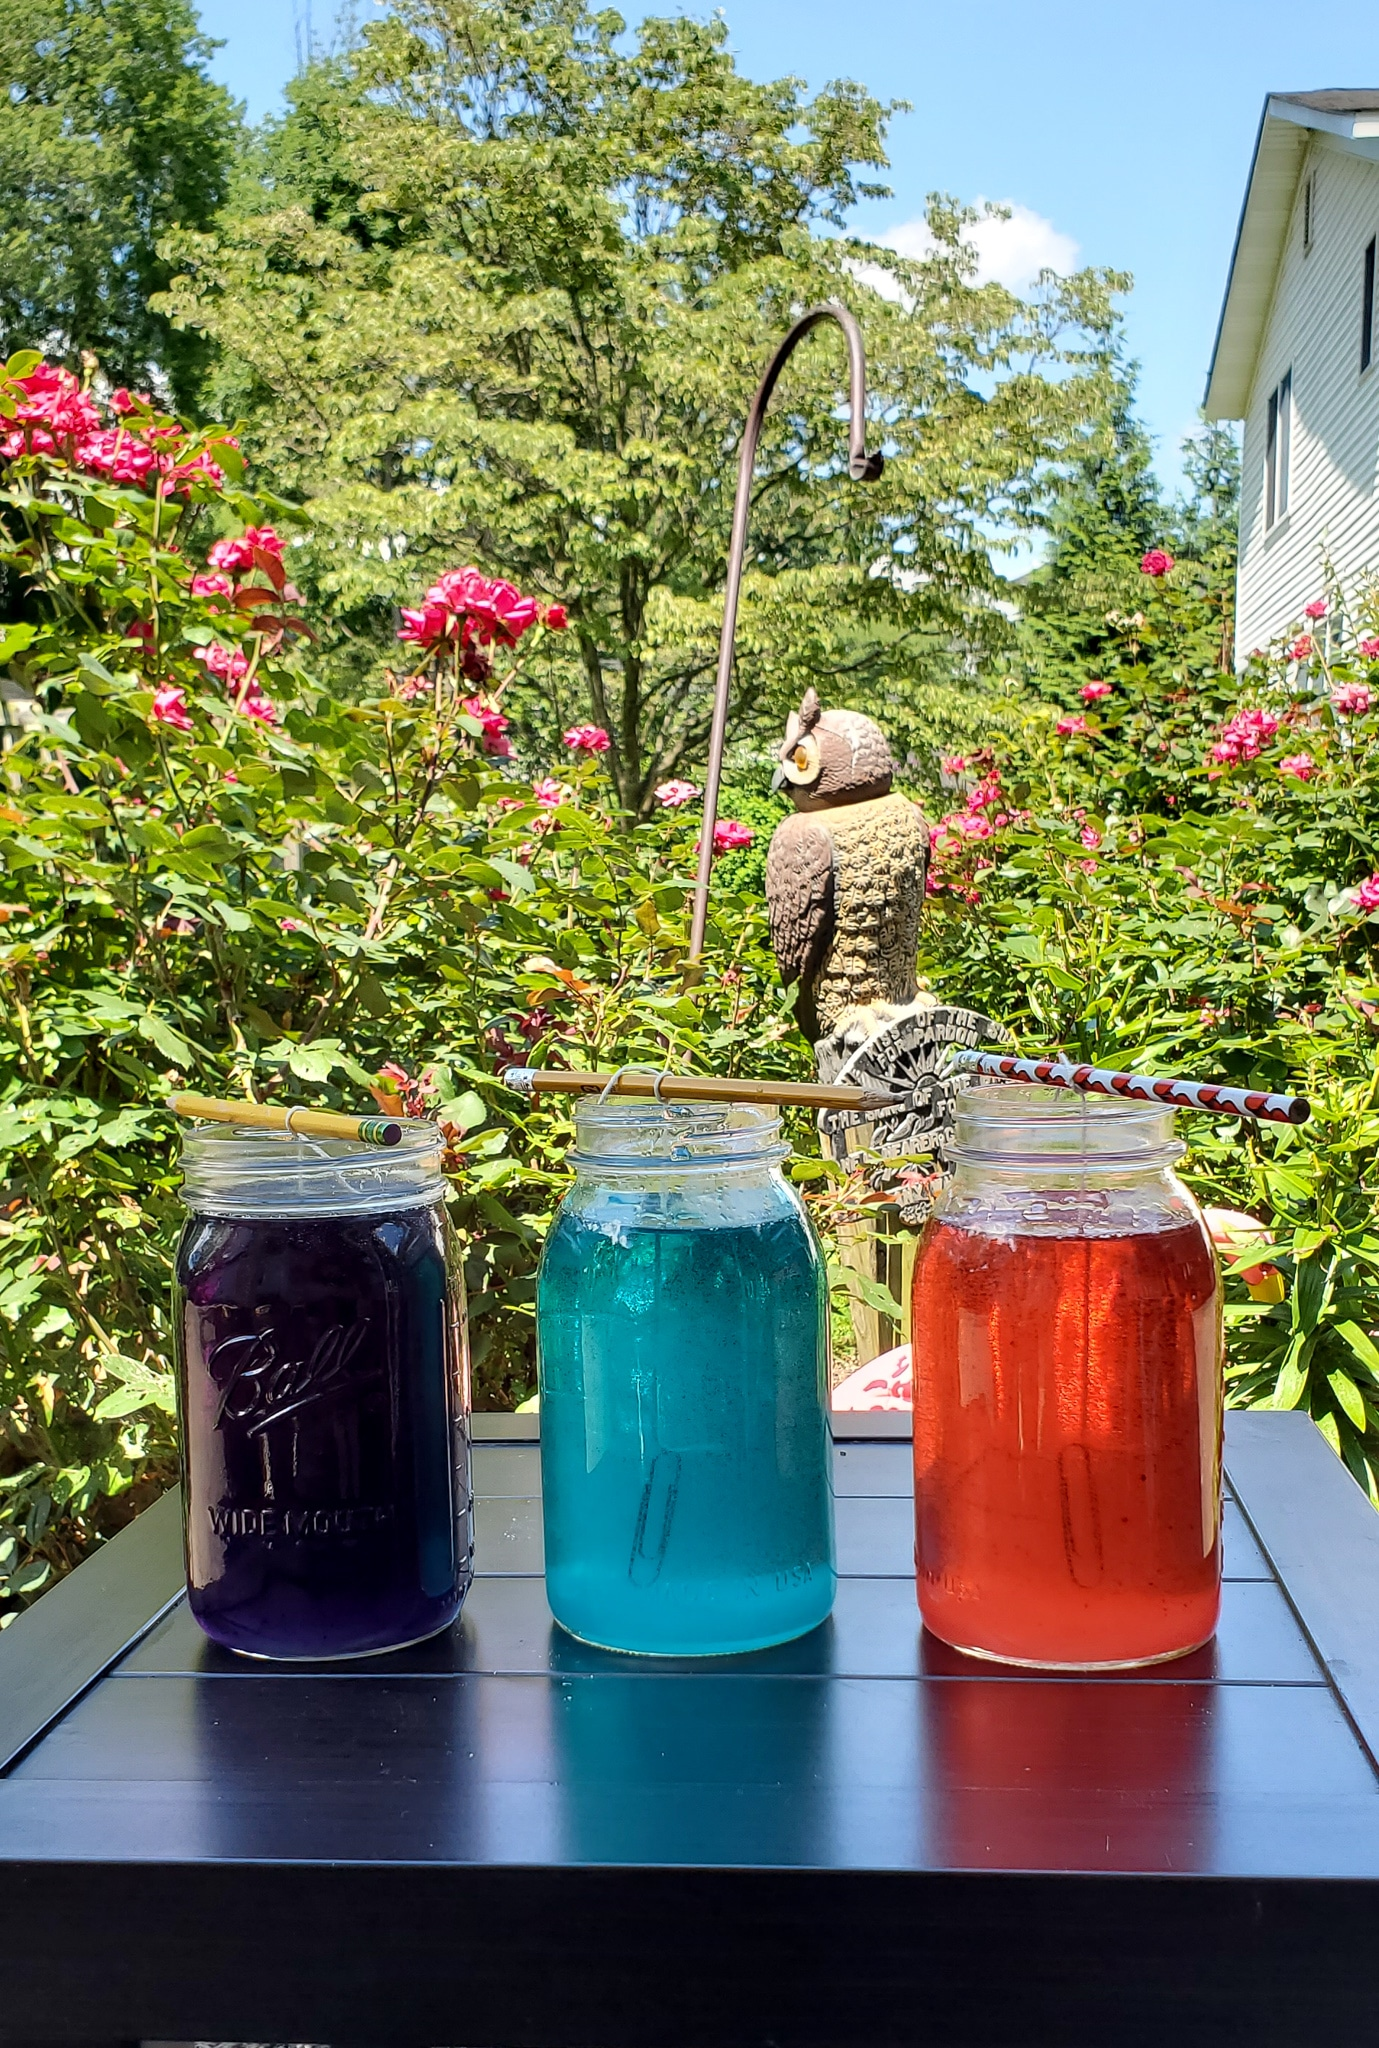 Crystal Gem Candy Jars. Grow your very own Crystal Gem Candy at home! Inspired by Stephen Universe Crystal Gem's a sugary treat that doubles as a science experiment, you can create and watch your very own candy gems grow day by day.